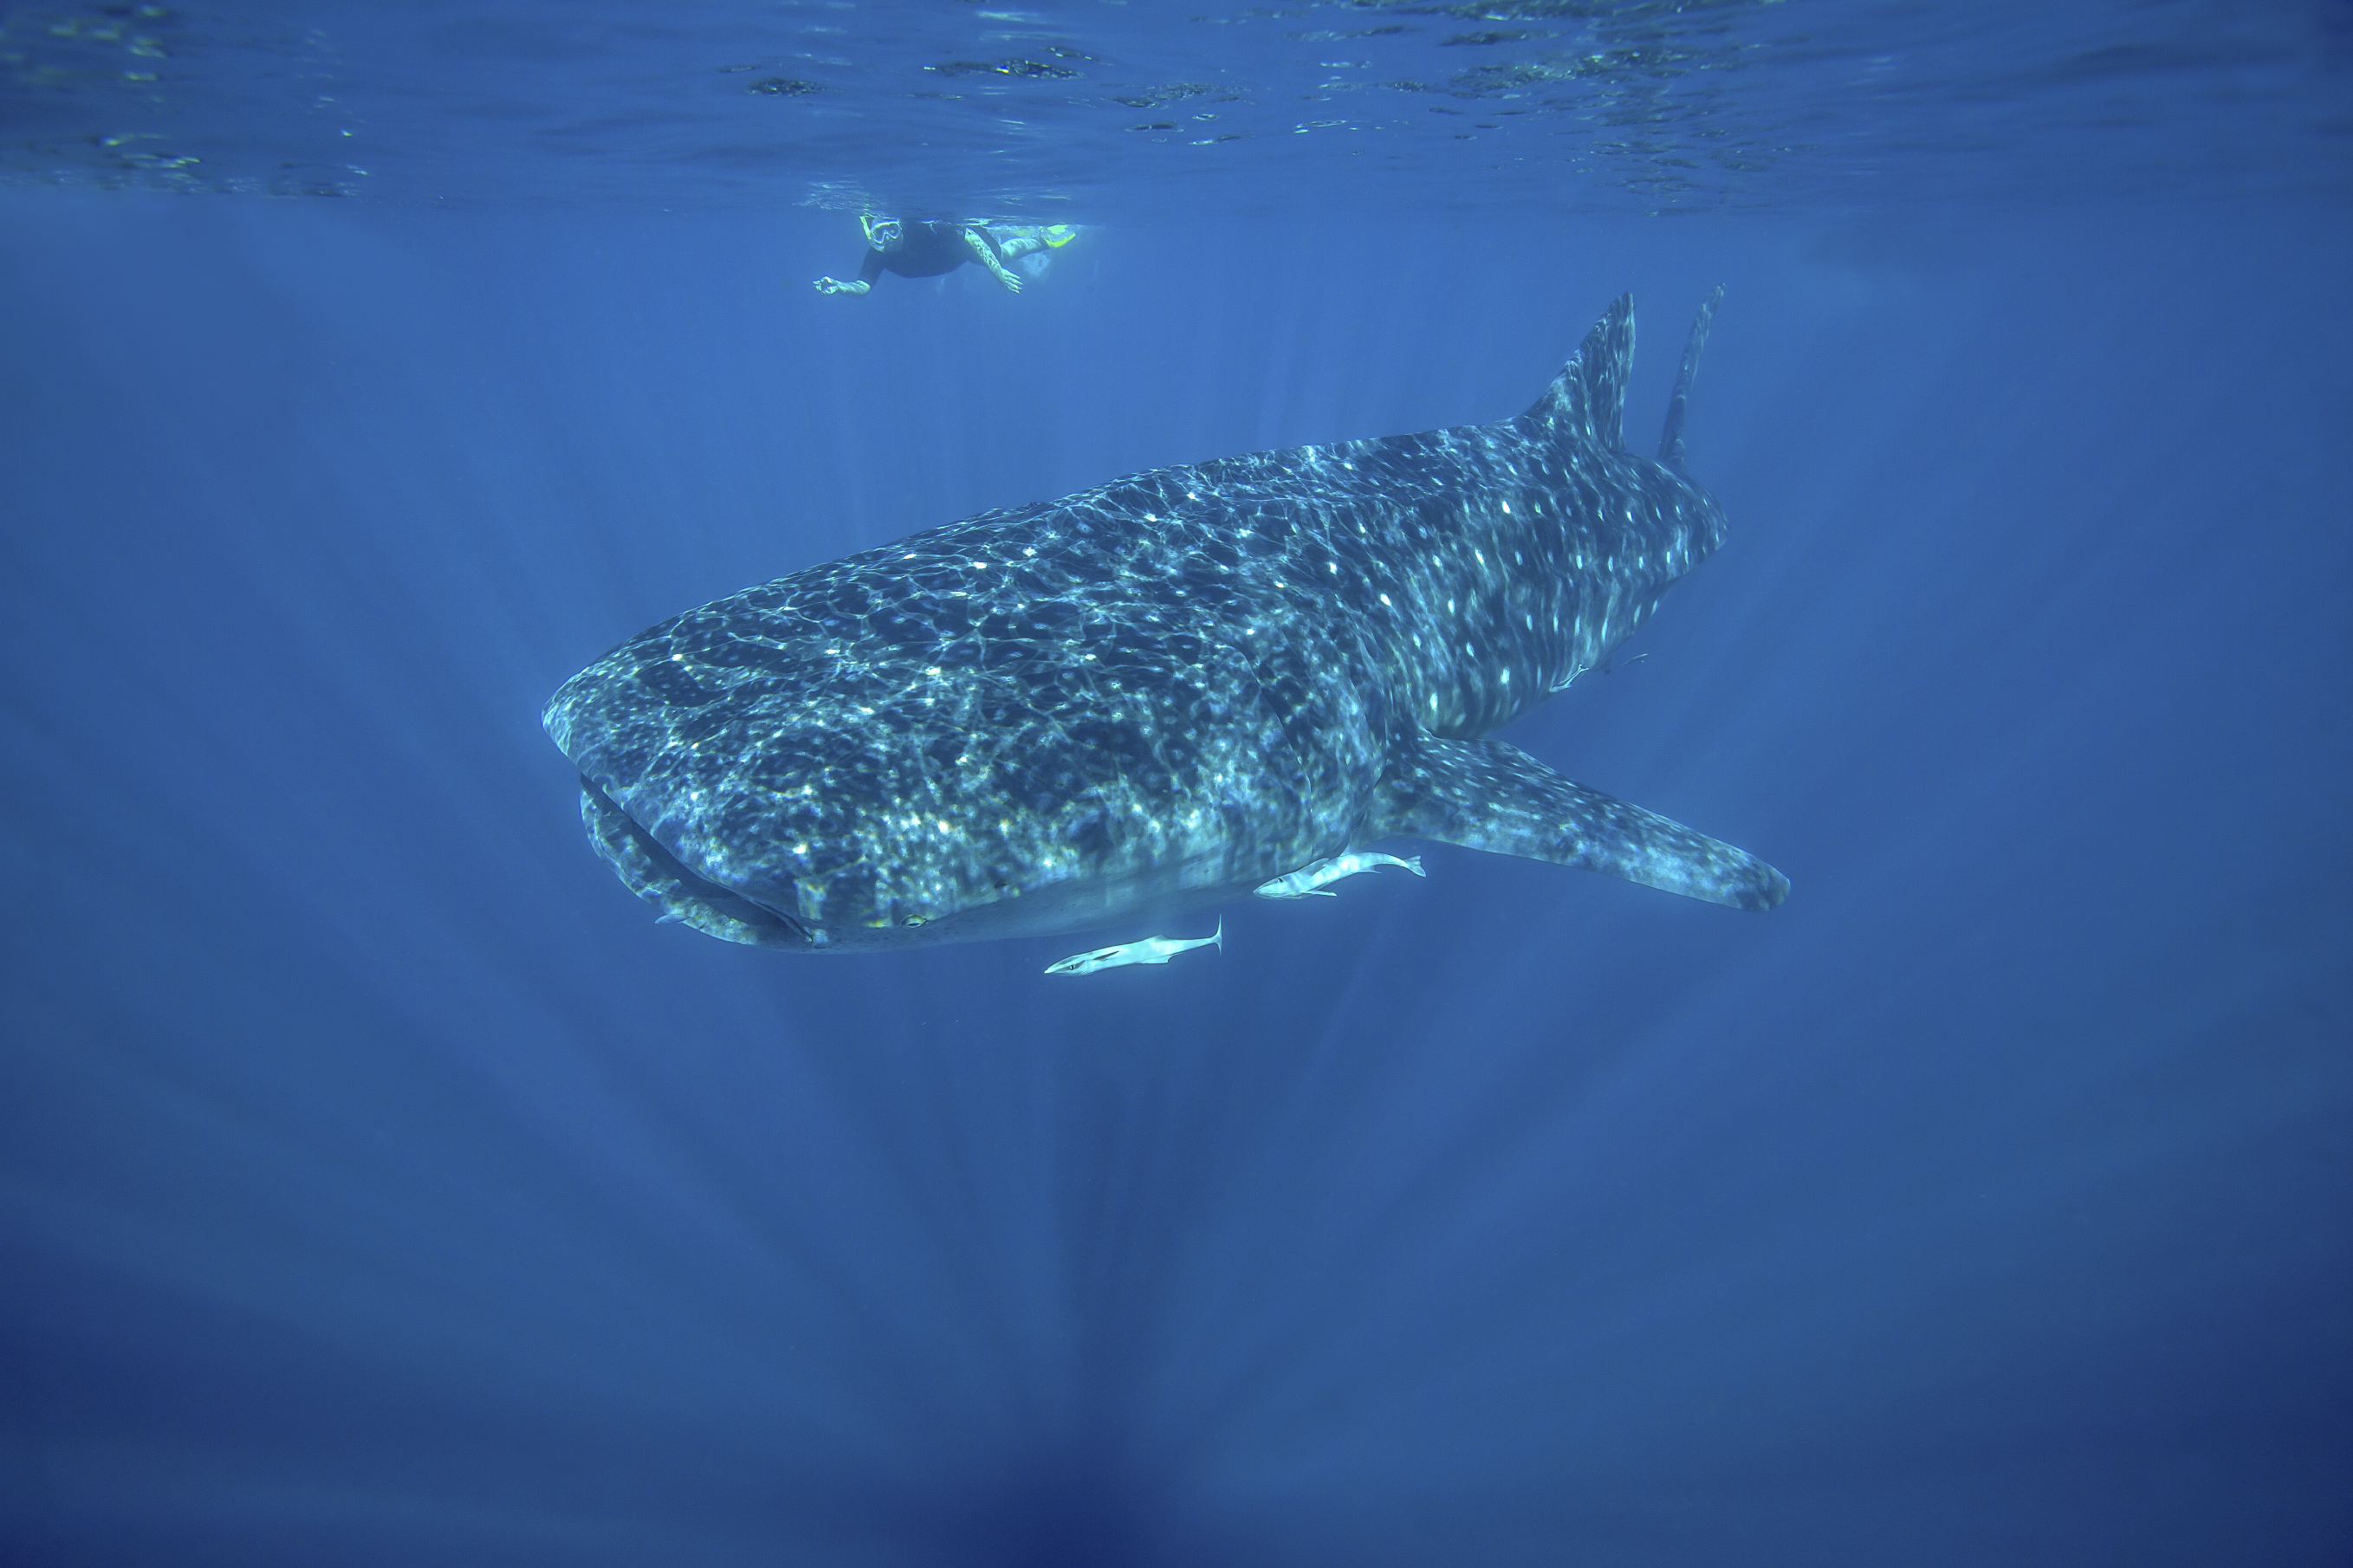 Swimming with Whale Sharks, Ningaloo Reef - iStock_000045840254Large